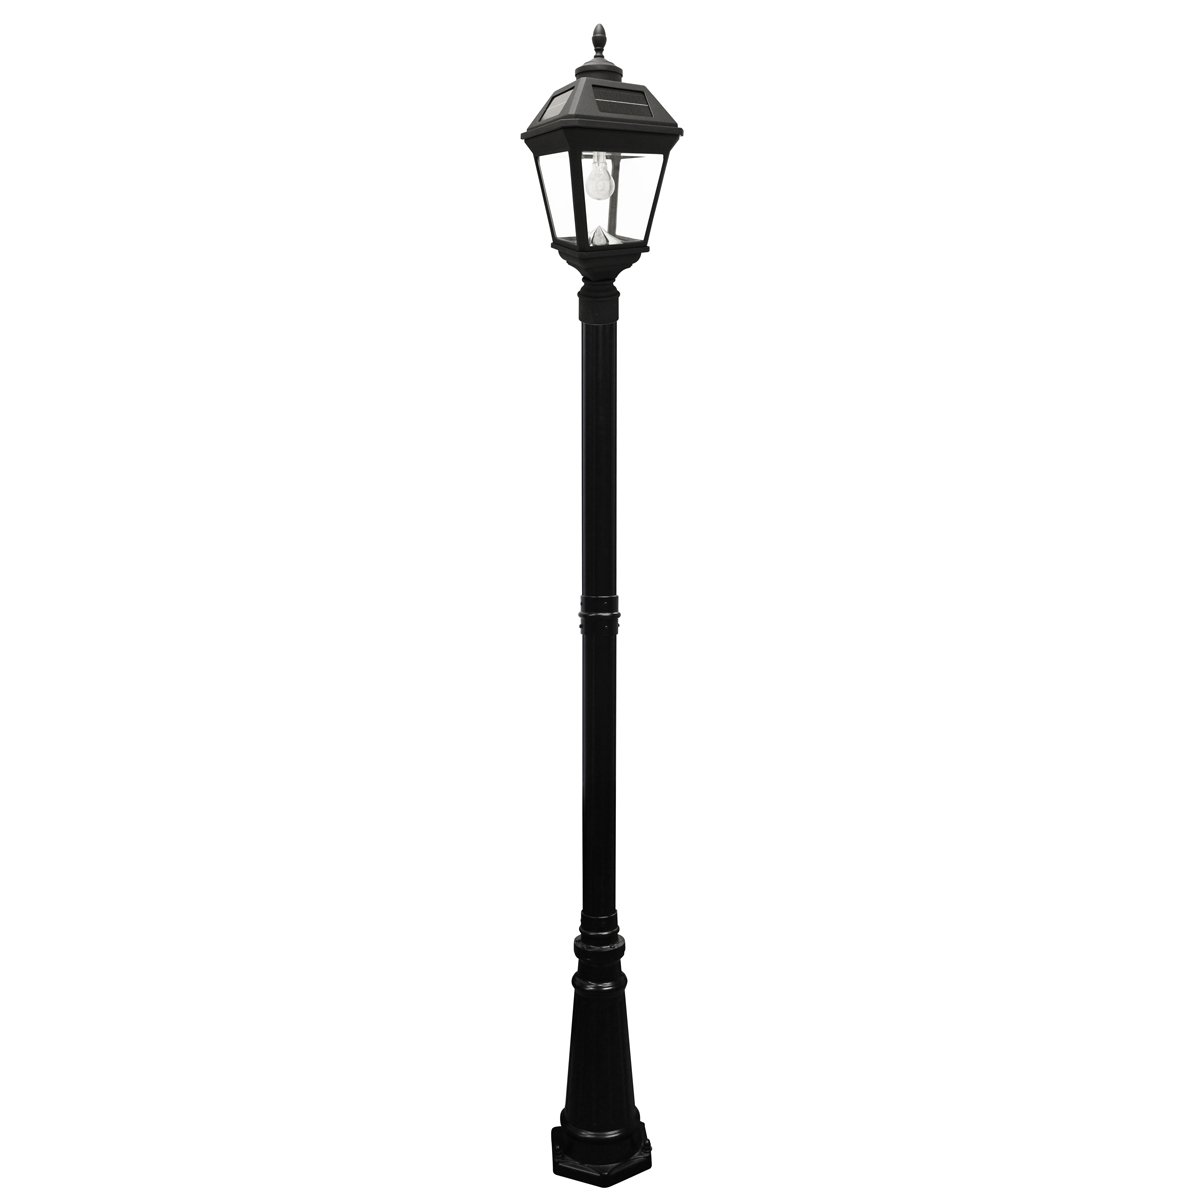 Gama Sonic Imperial Bulb Solar Outdoor Lamp Post GS-97B-S - Black Finish